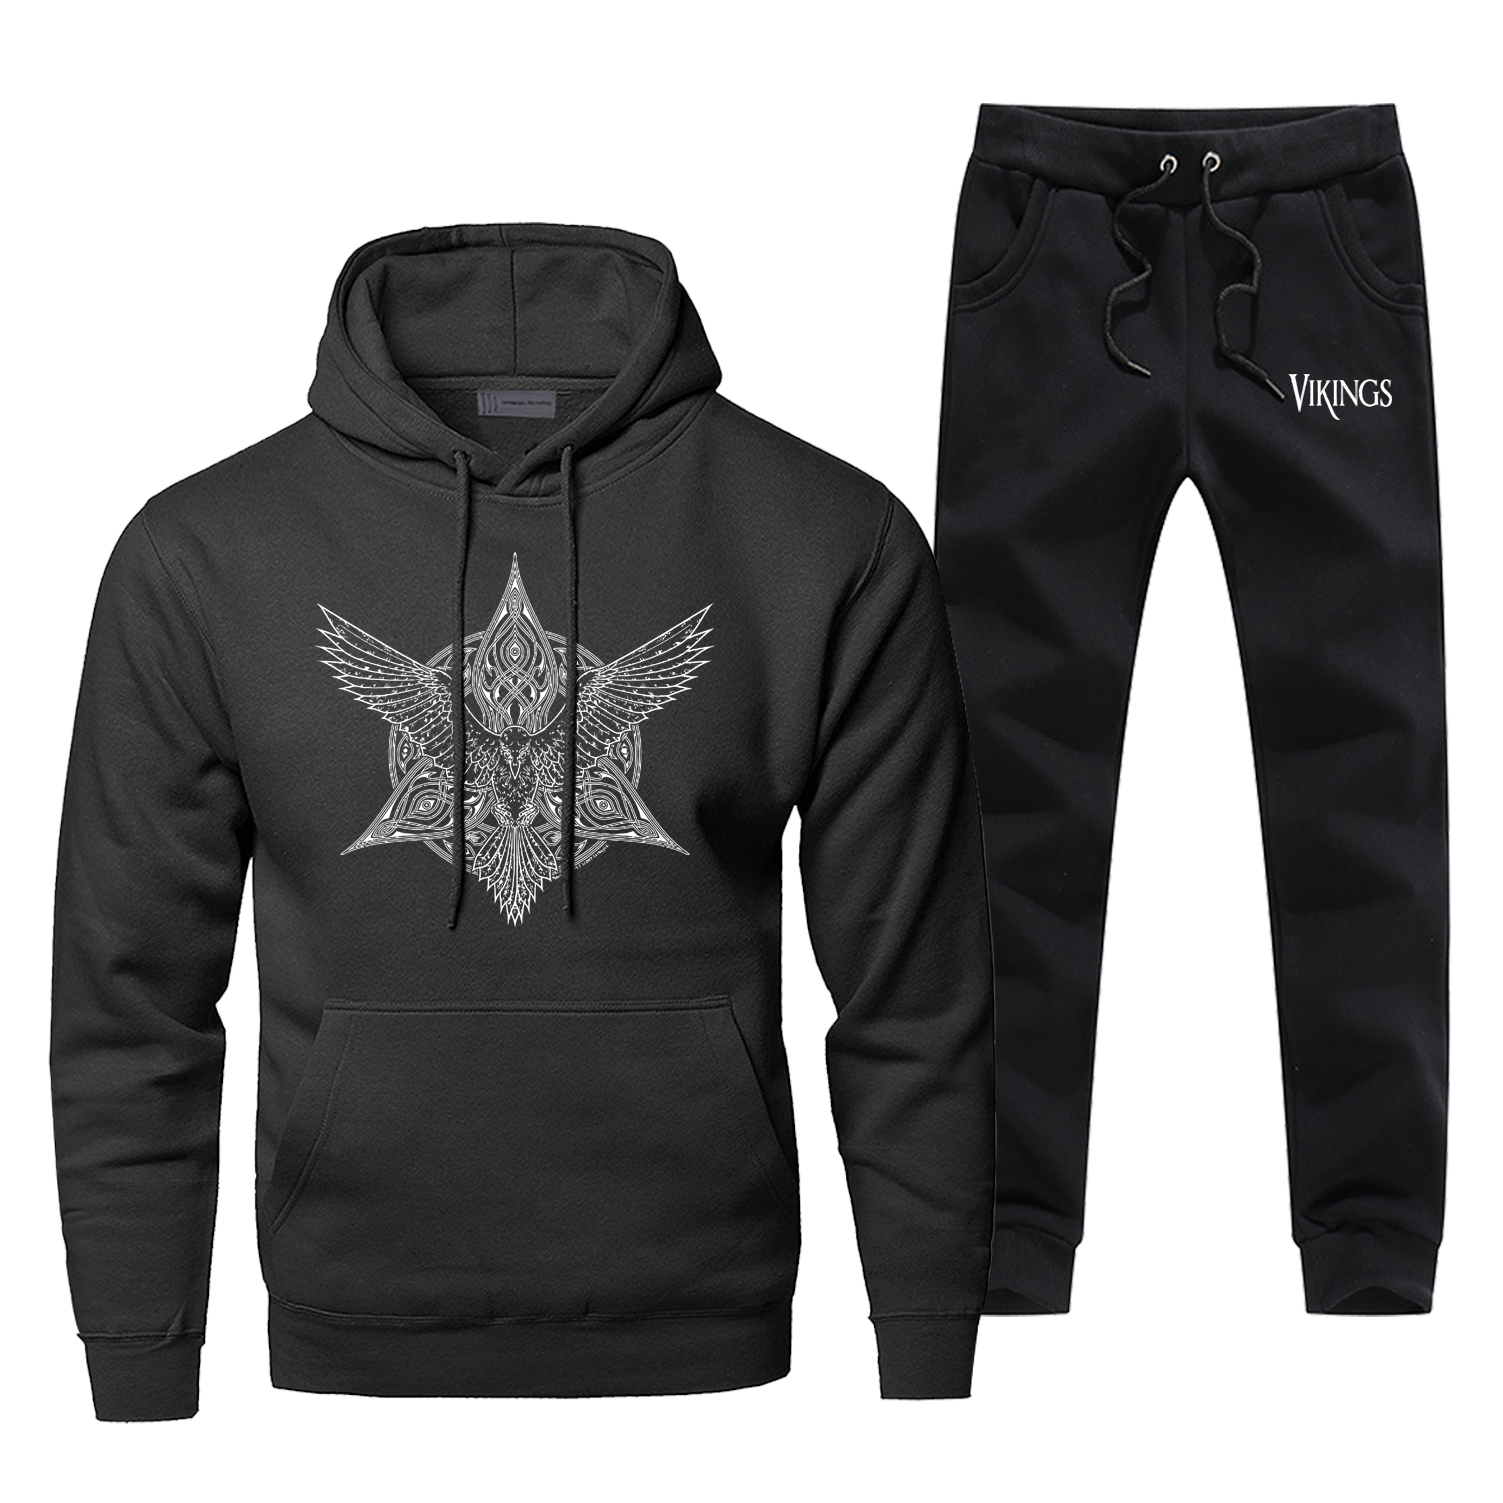 Odin Vikings Hoodie Pants Set Men Sweatshirt Viking Simbal Male Hoodies Sweatshirts Mens Sets Two Piece Pant Pullover Hoody Coat